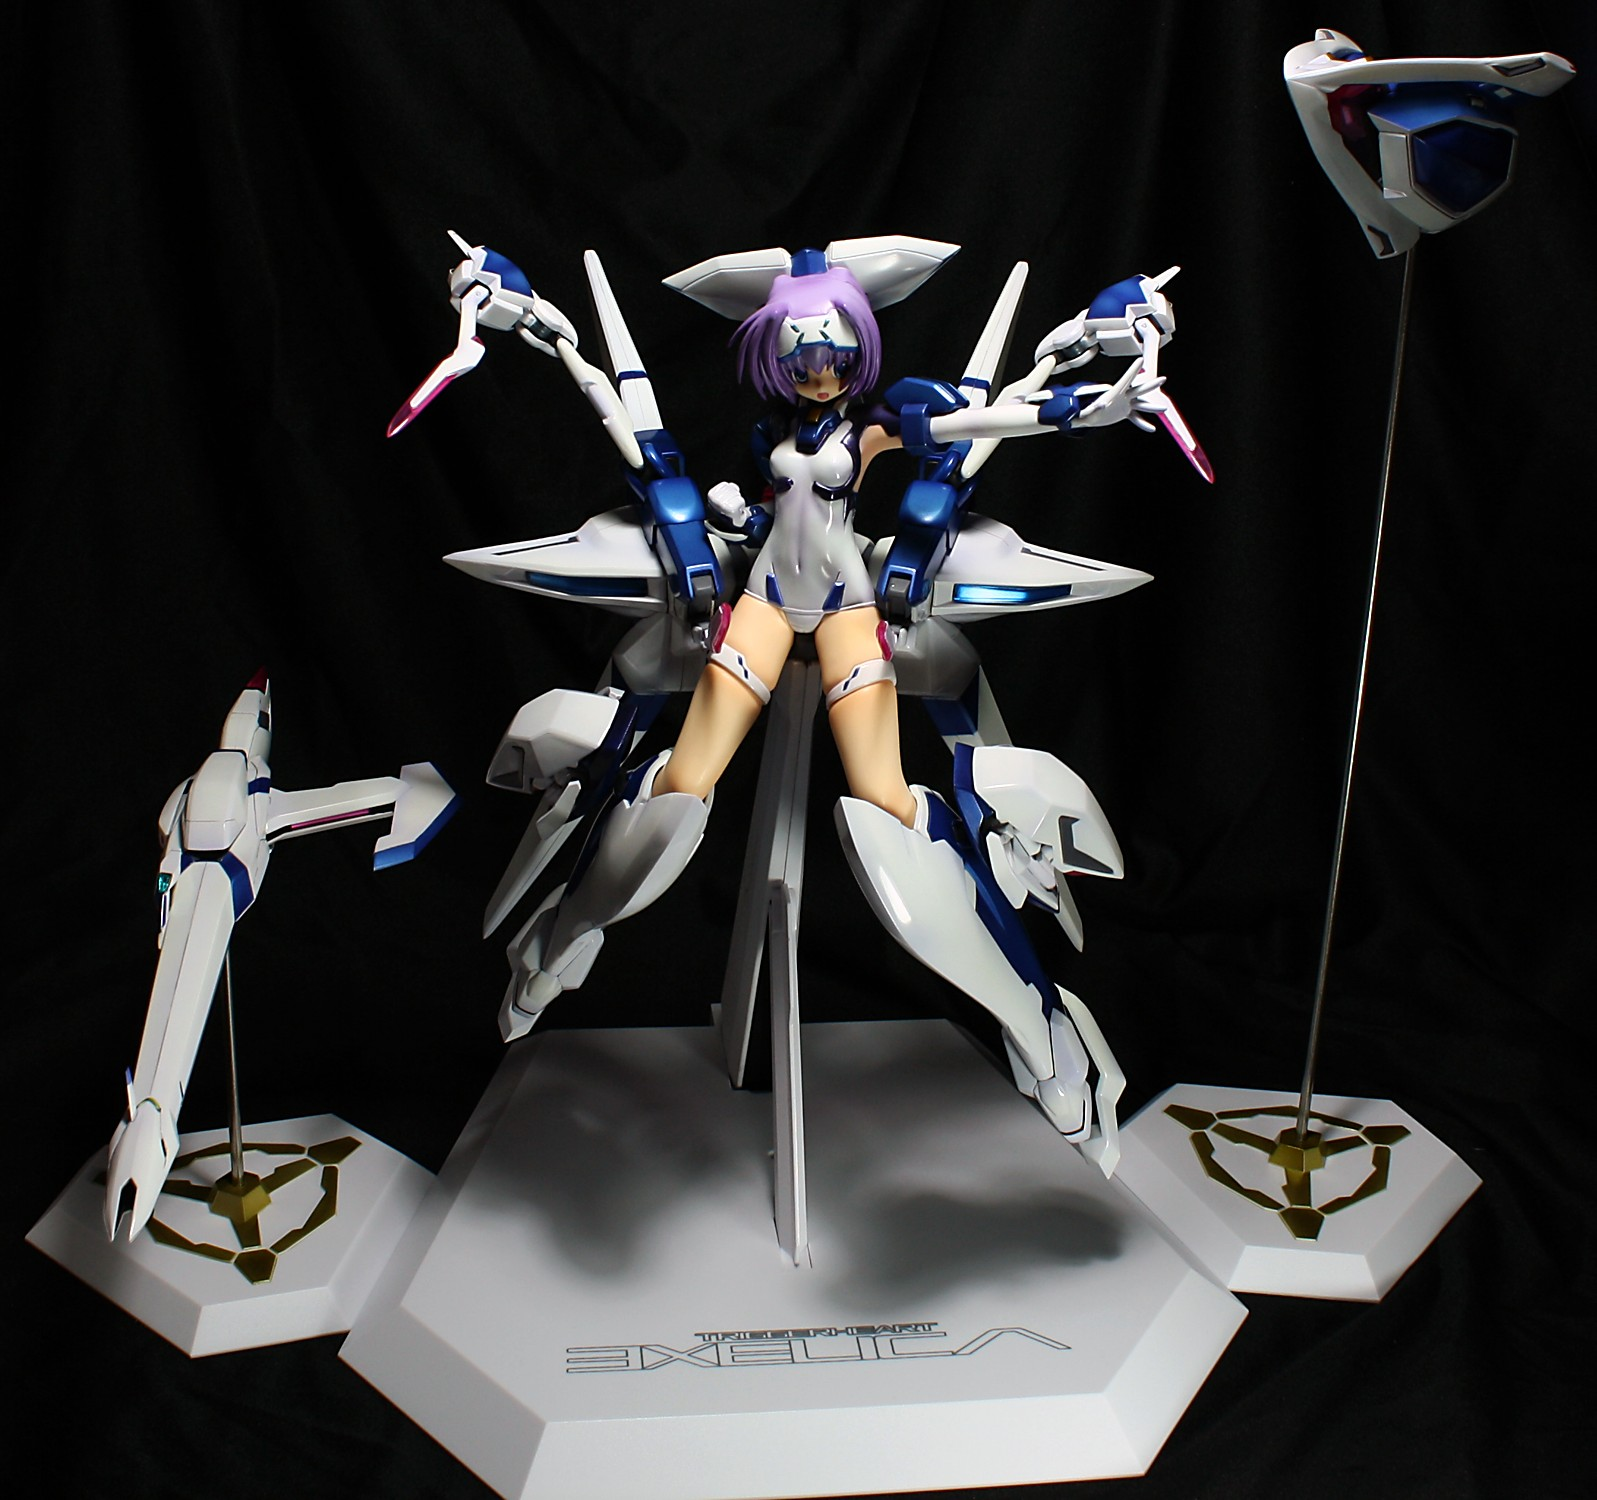 Alter Exelica from Triggerheart Exelica Review